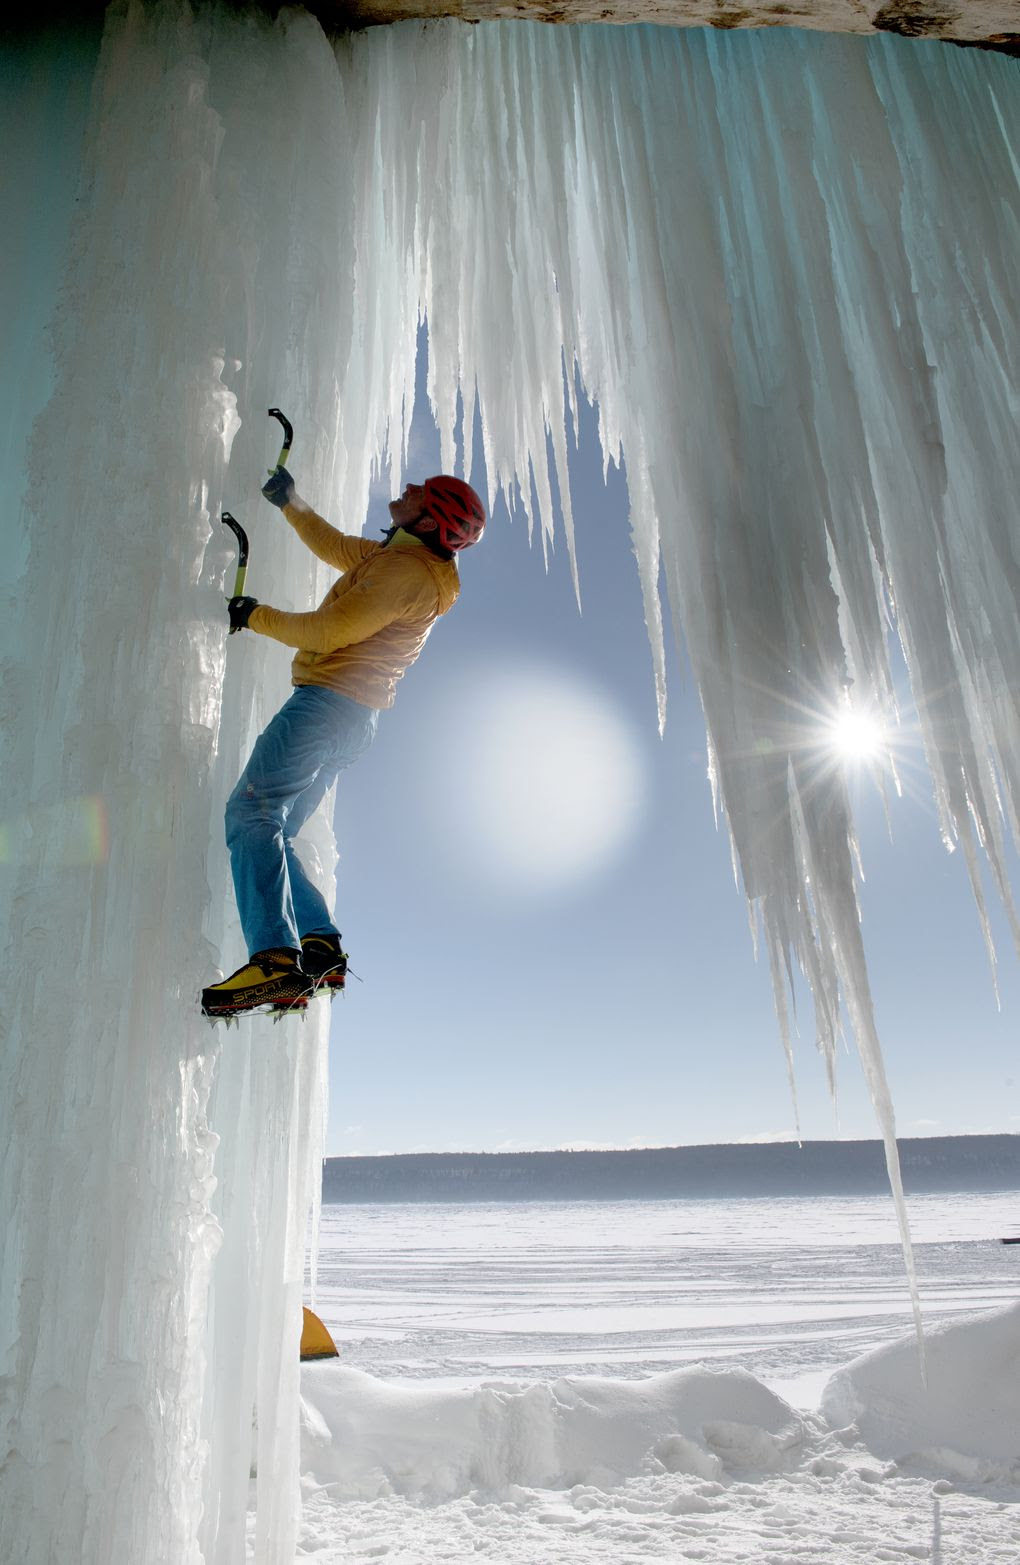 Mountaineer Conrad Anker climbs a frozen waterfall at Upper Michigan's Pictured Rocks National Lakeshore.